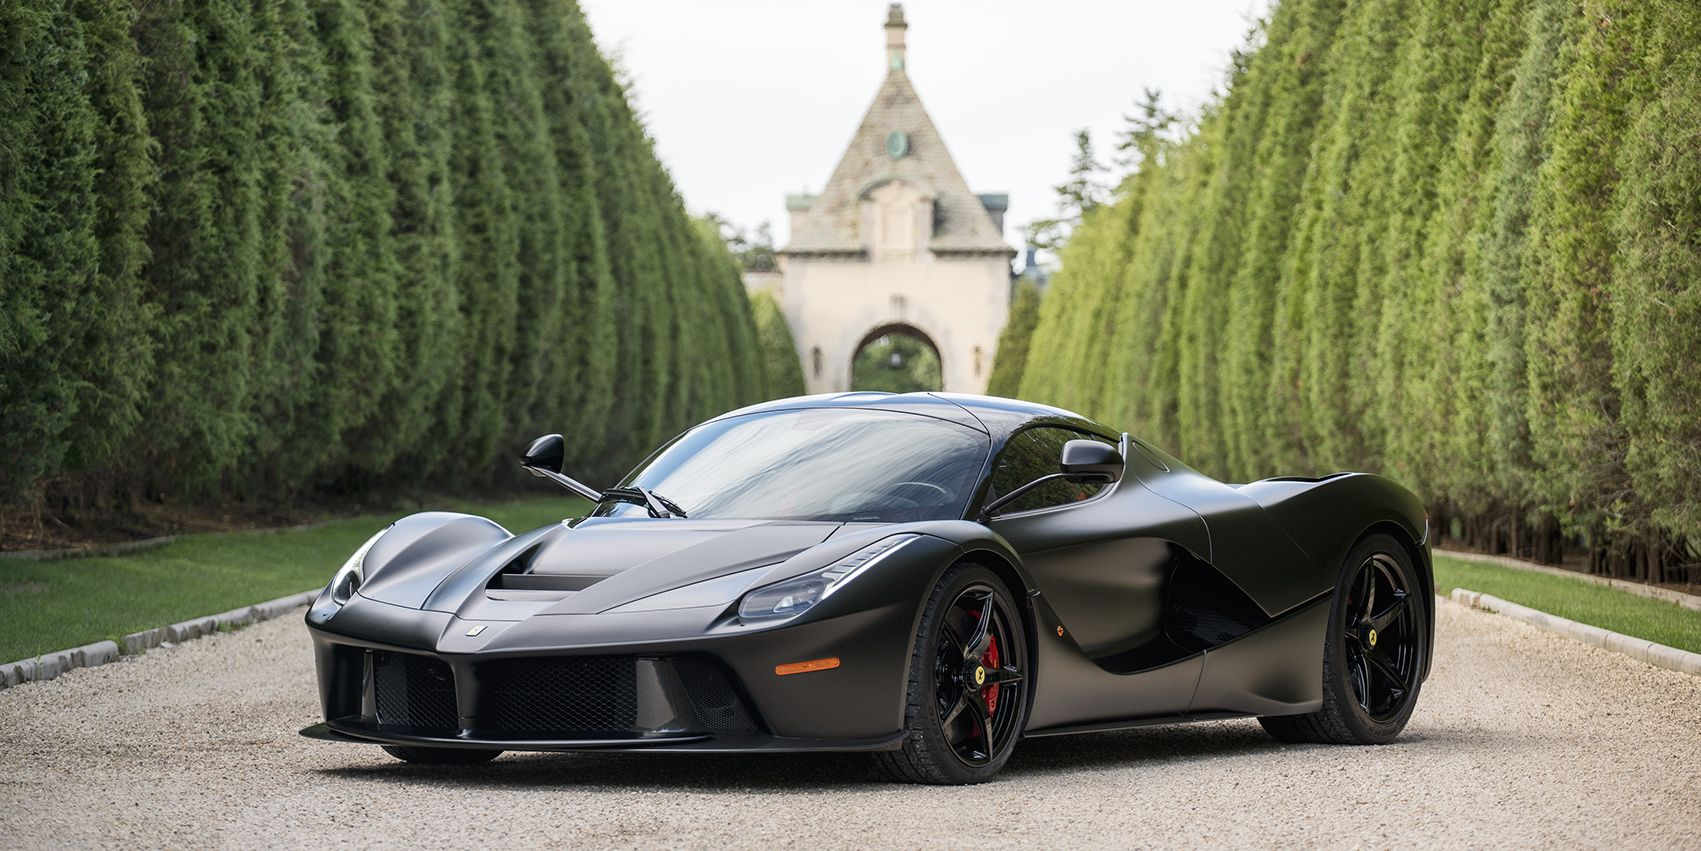 ferrari laferrari for sale - how much will this ferrari cost at auction?